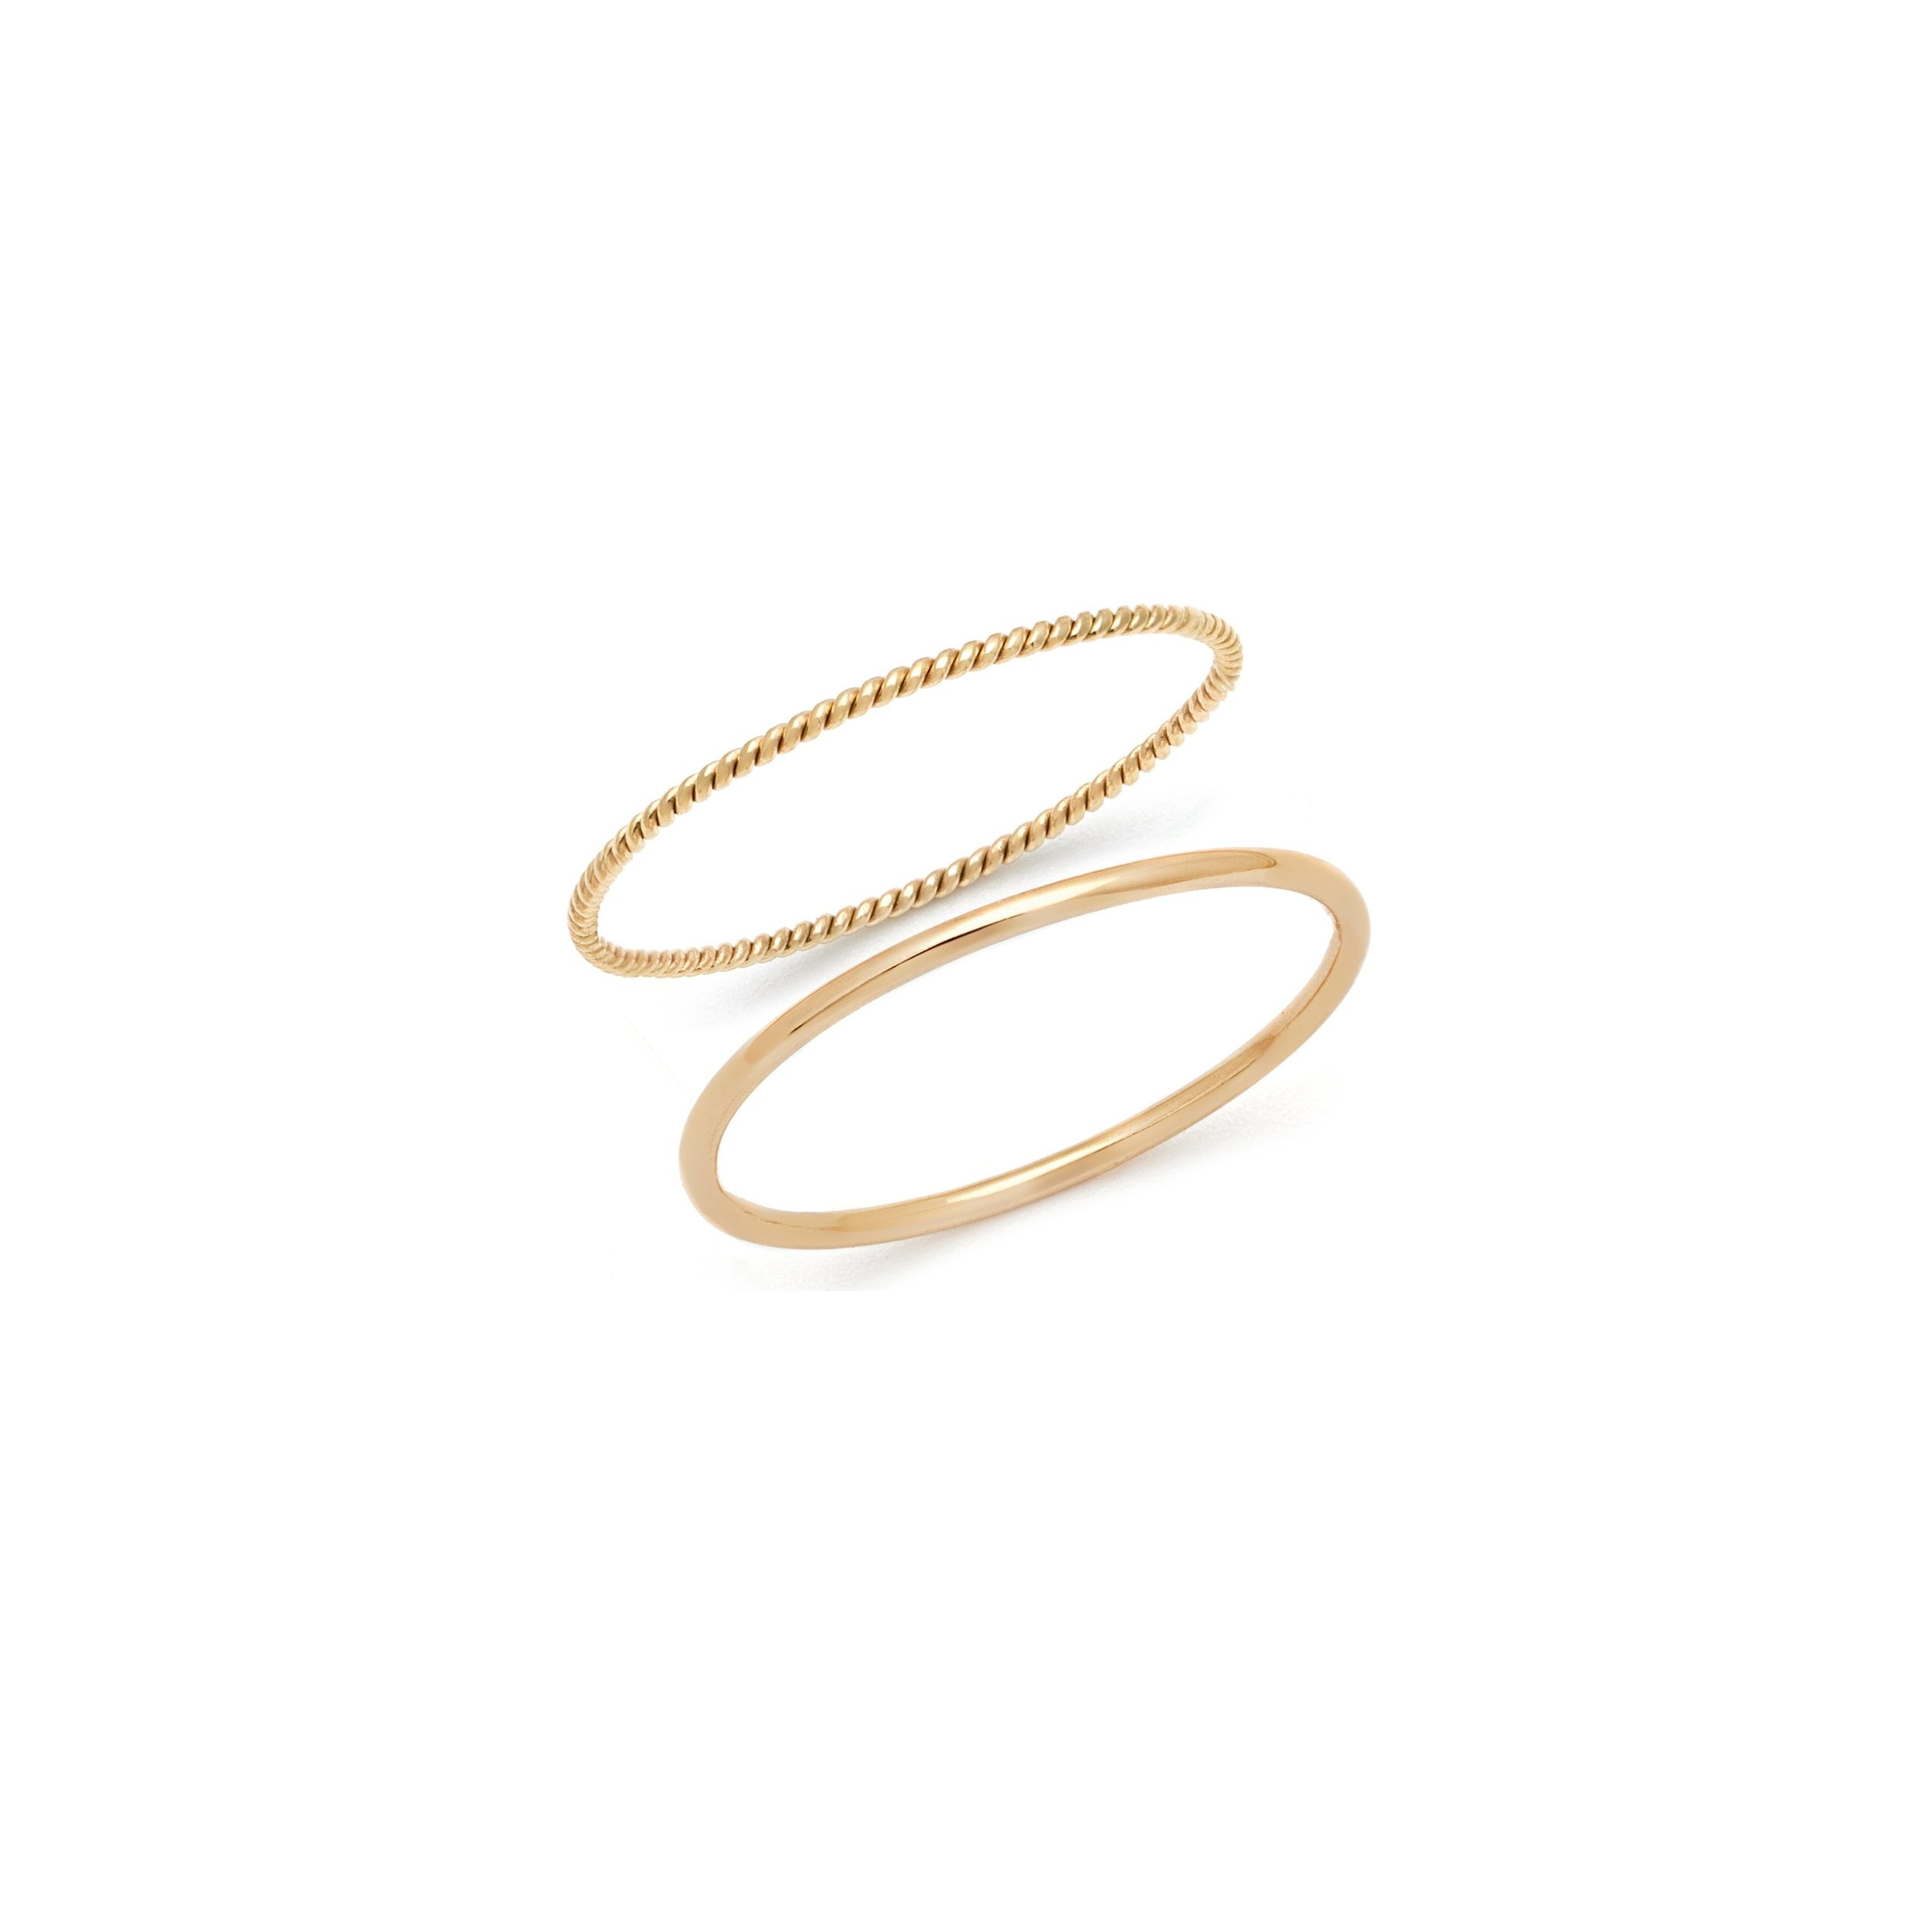 The Minimalist Stack - 14k Solid Gold